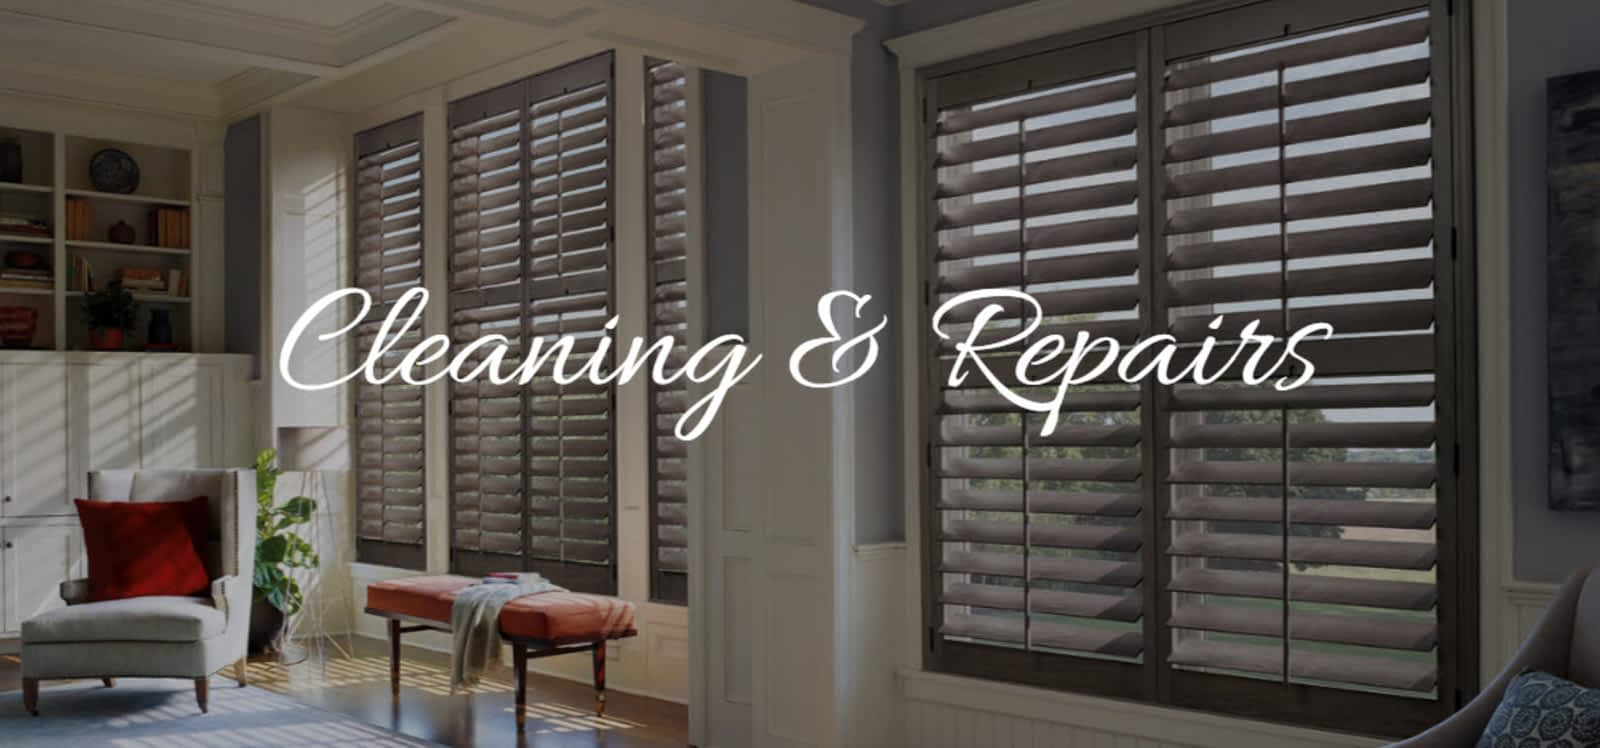 to blinds wood blind youtube a horizontal restring how repairs watch